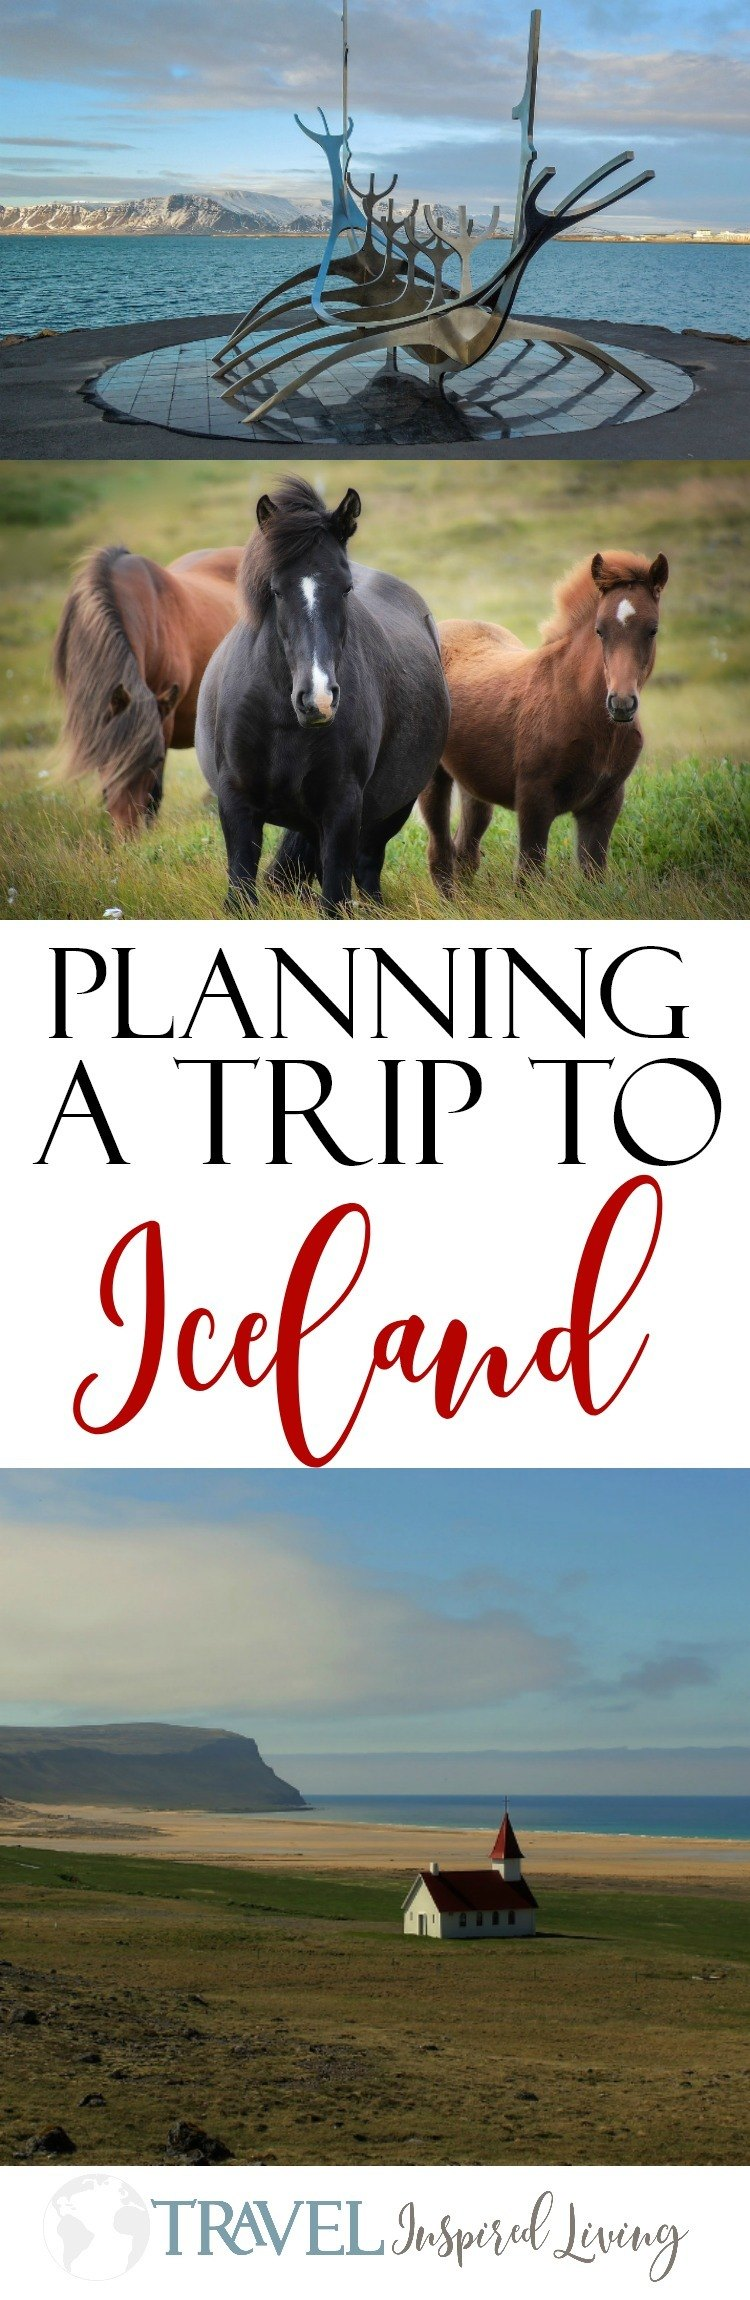 Planning a trip to Iceland offers travel tips on the best time to visit Iceland, what to wear, where to go and when to visit.